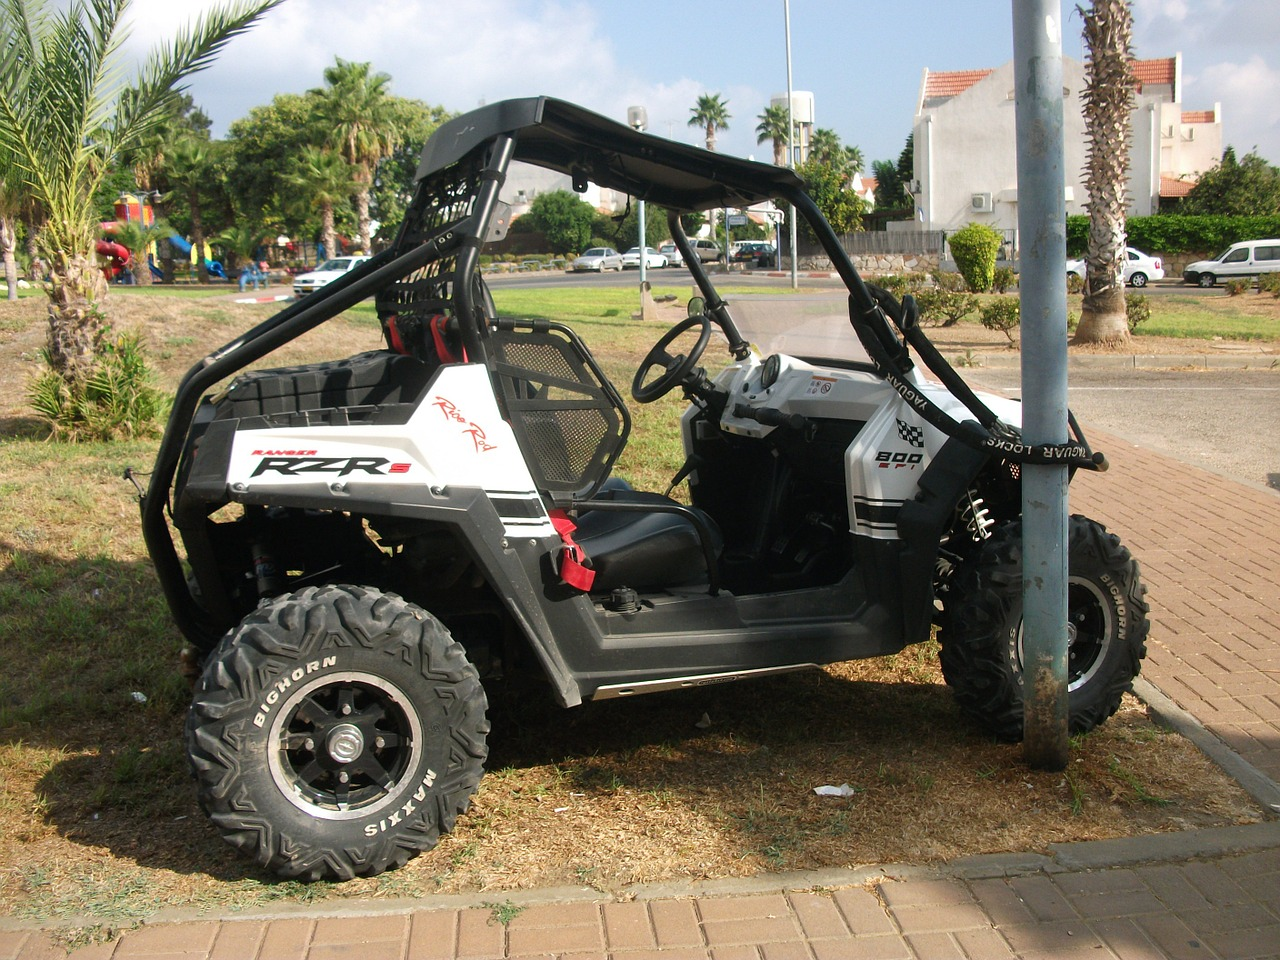 atv sports transport free photo